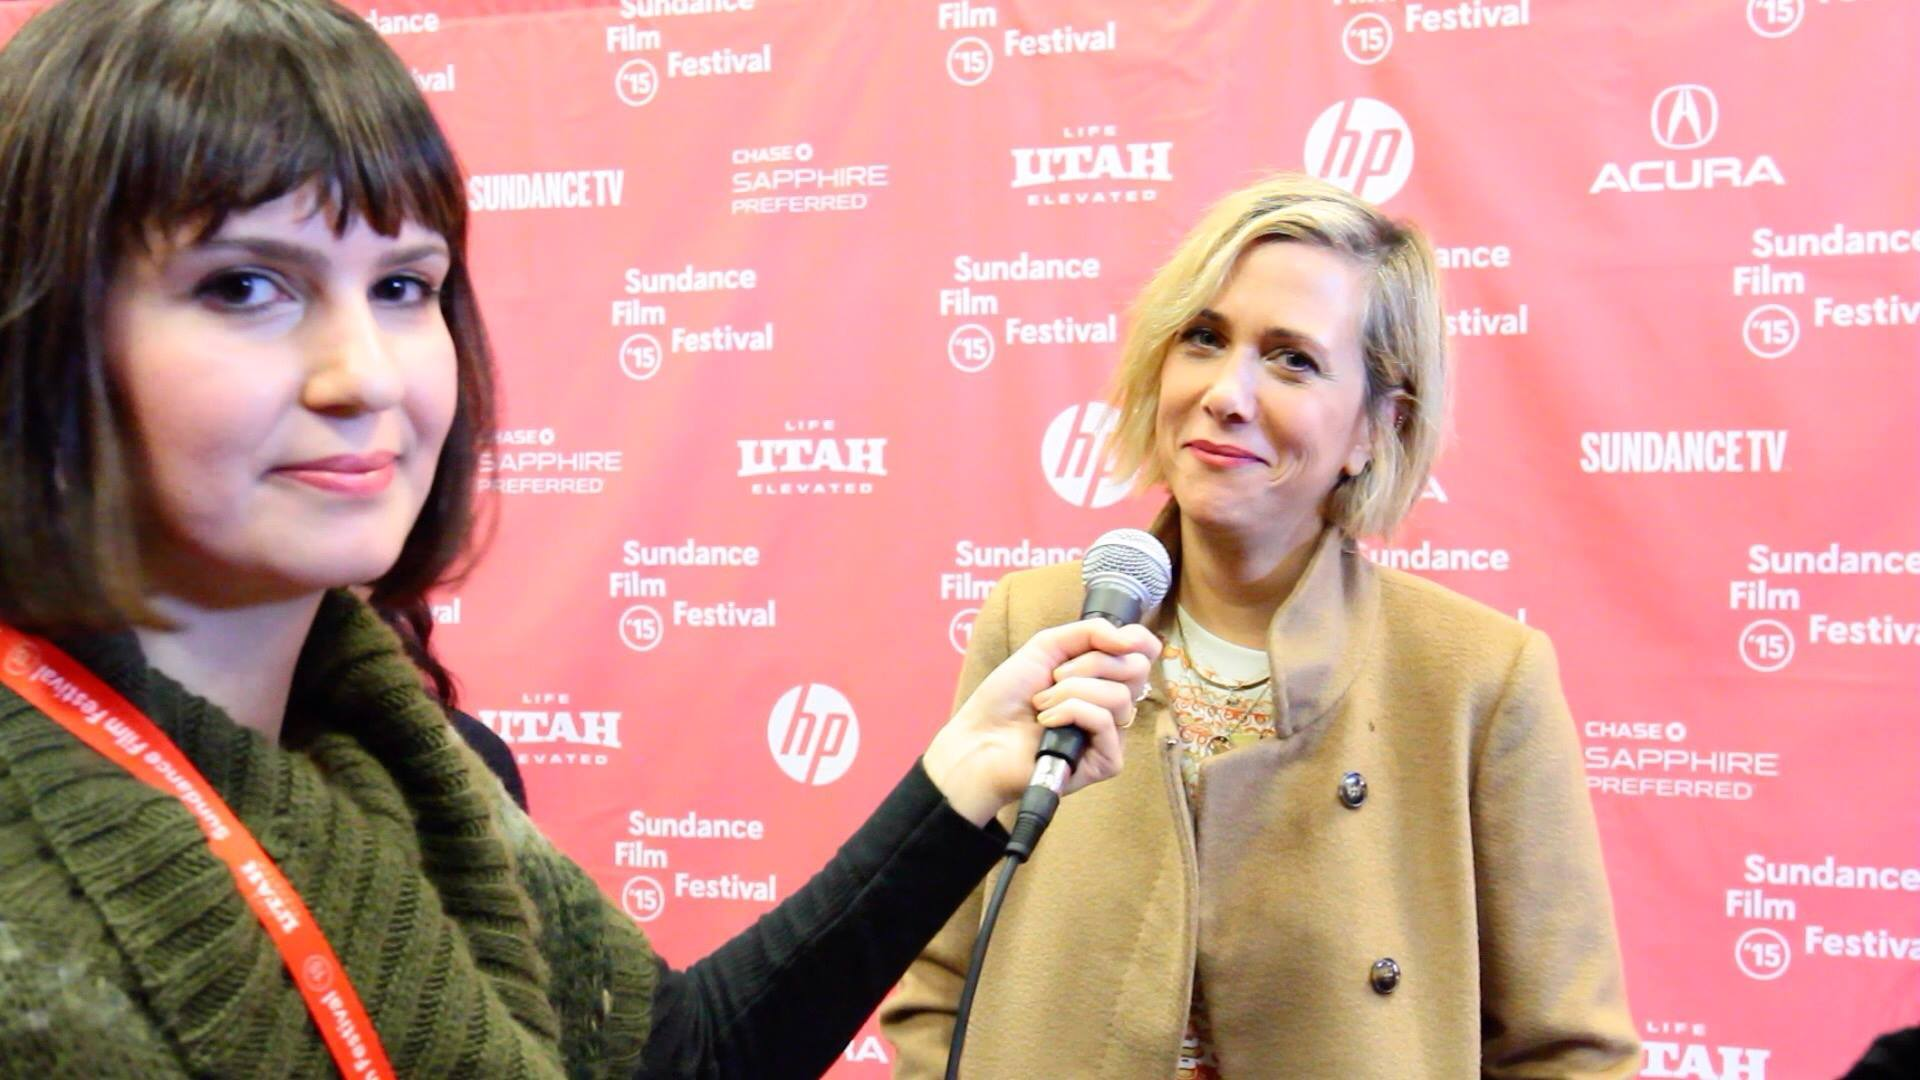 Inconveniently Interviewing all of the celebrities at Sundance!